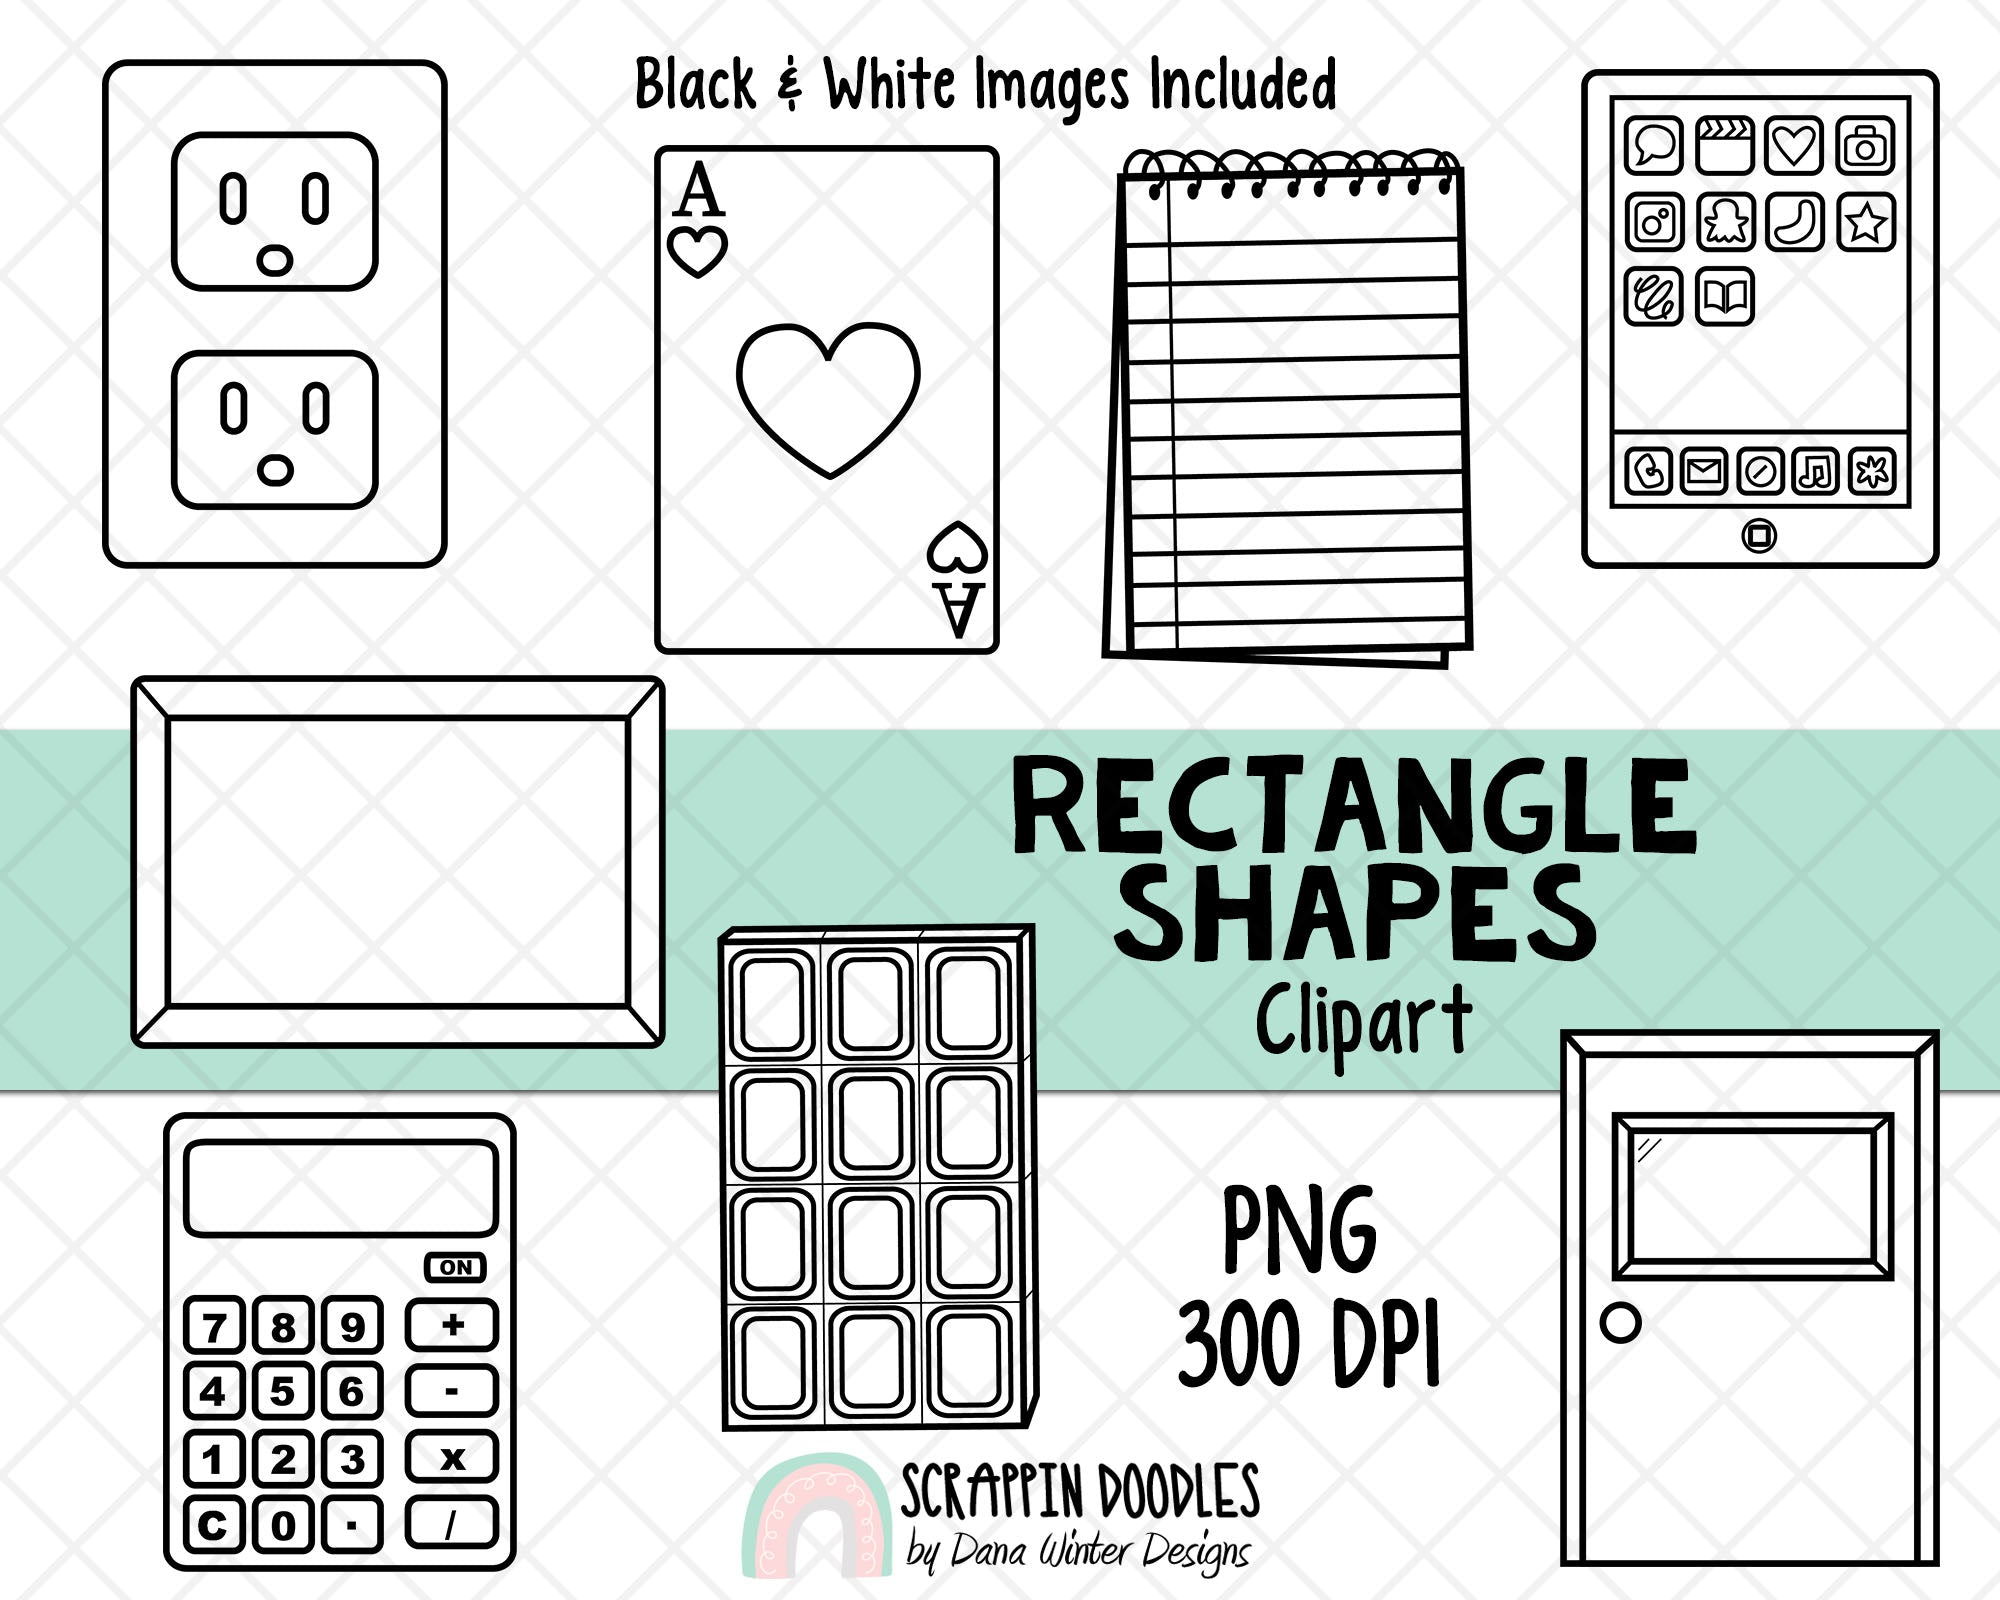 Shapes Clip Art - Real Life Rectangle Shapes ClipArt - Geometric Shapes - 3D Shape Clipart - Math ClipArt - Shape Graphics - 2D Shapes